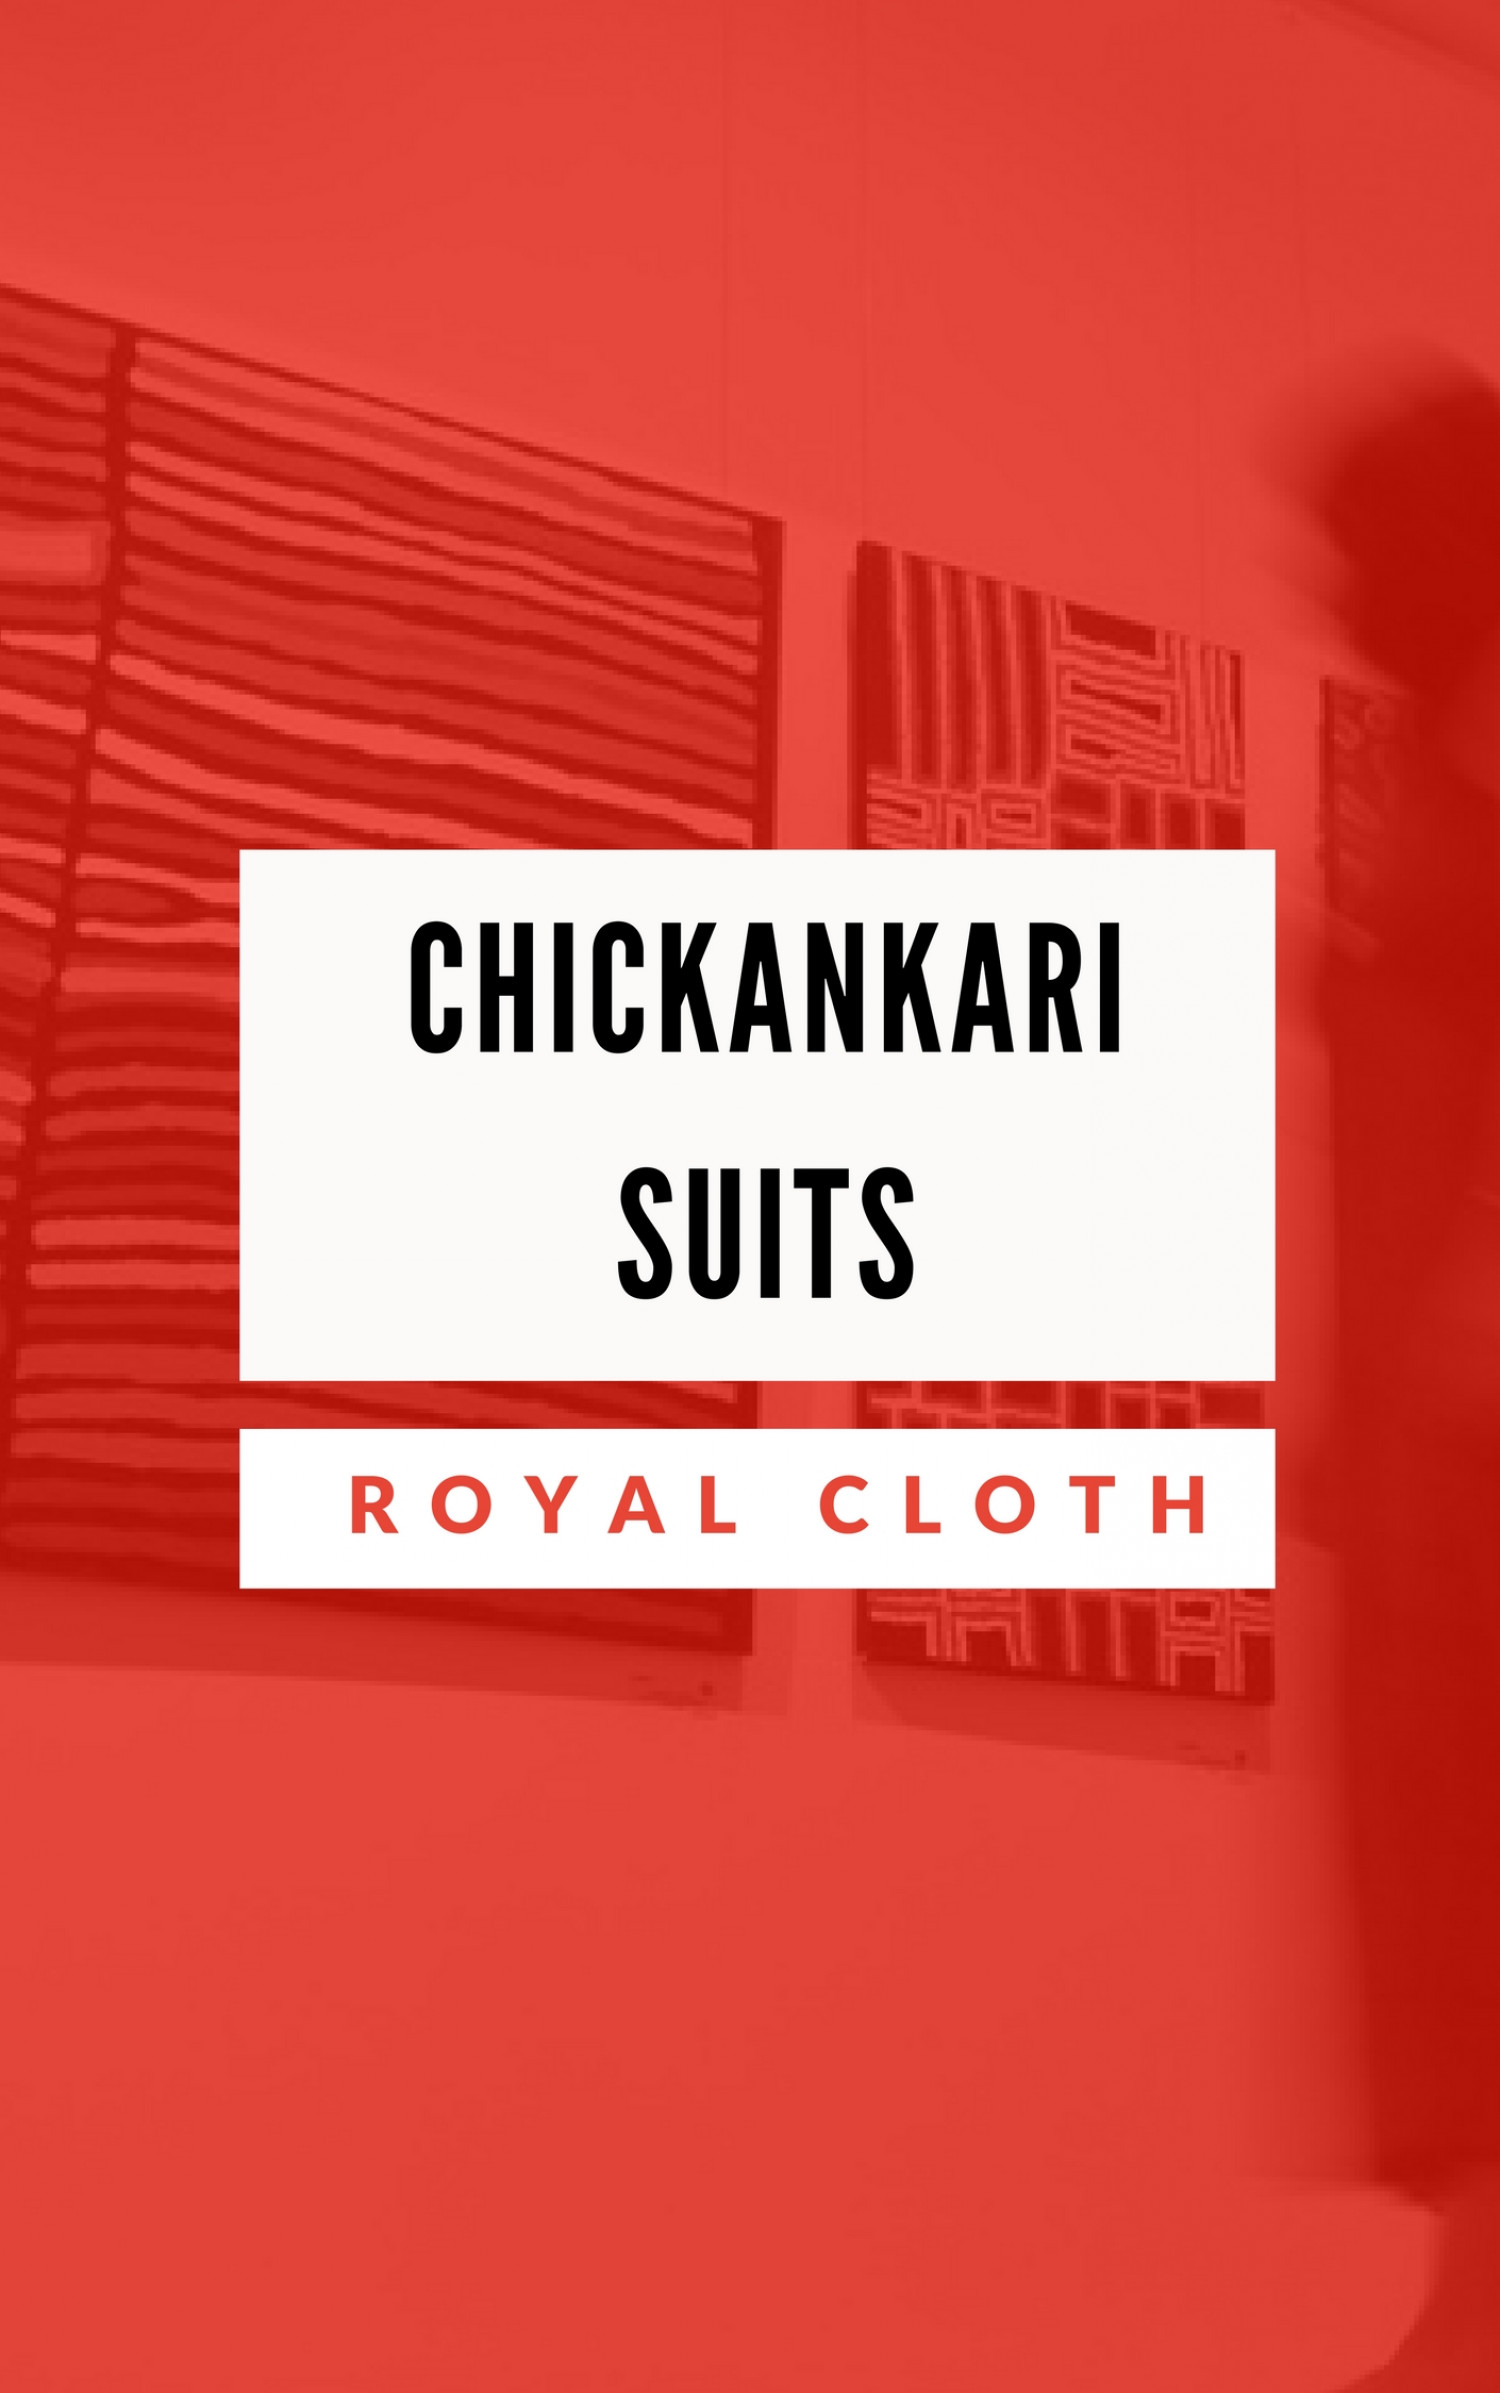 Chikankari Suits Infographic